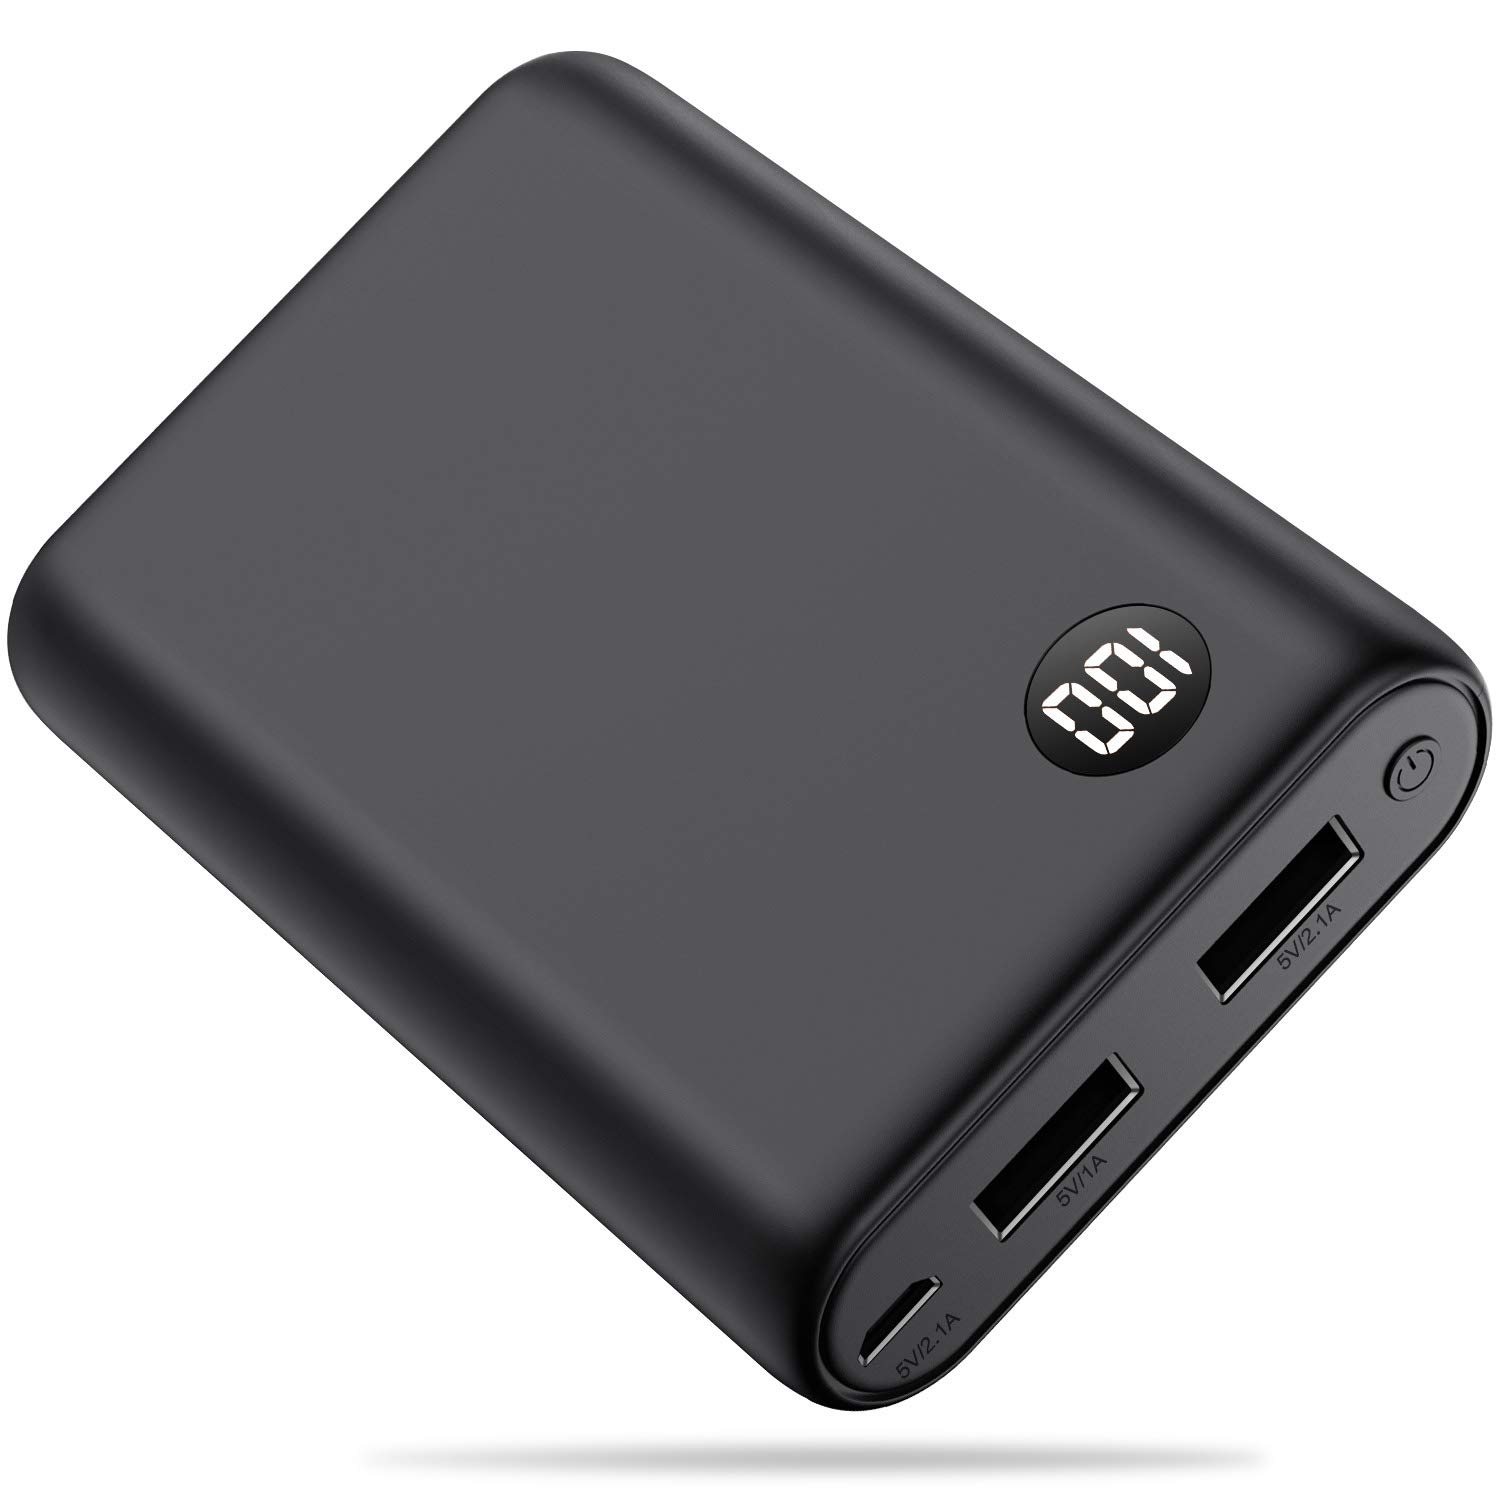 Portable charger Power bank 13800mAh [2019 Completely New] External Battery Packs Charger The Lightest High-speed charging portable Phone charger Compatible with SmartPhone, Android,Tablet and more